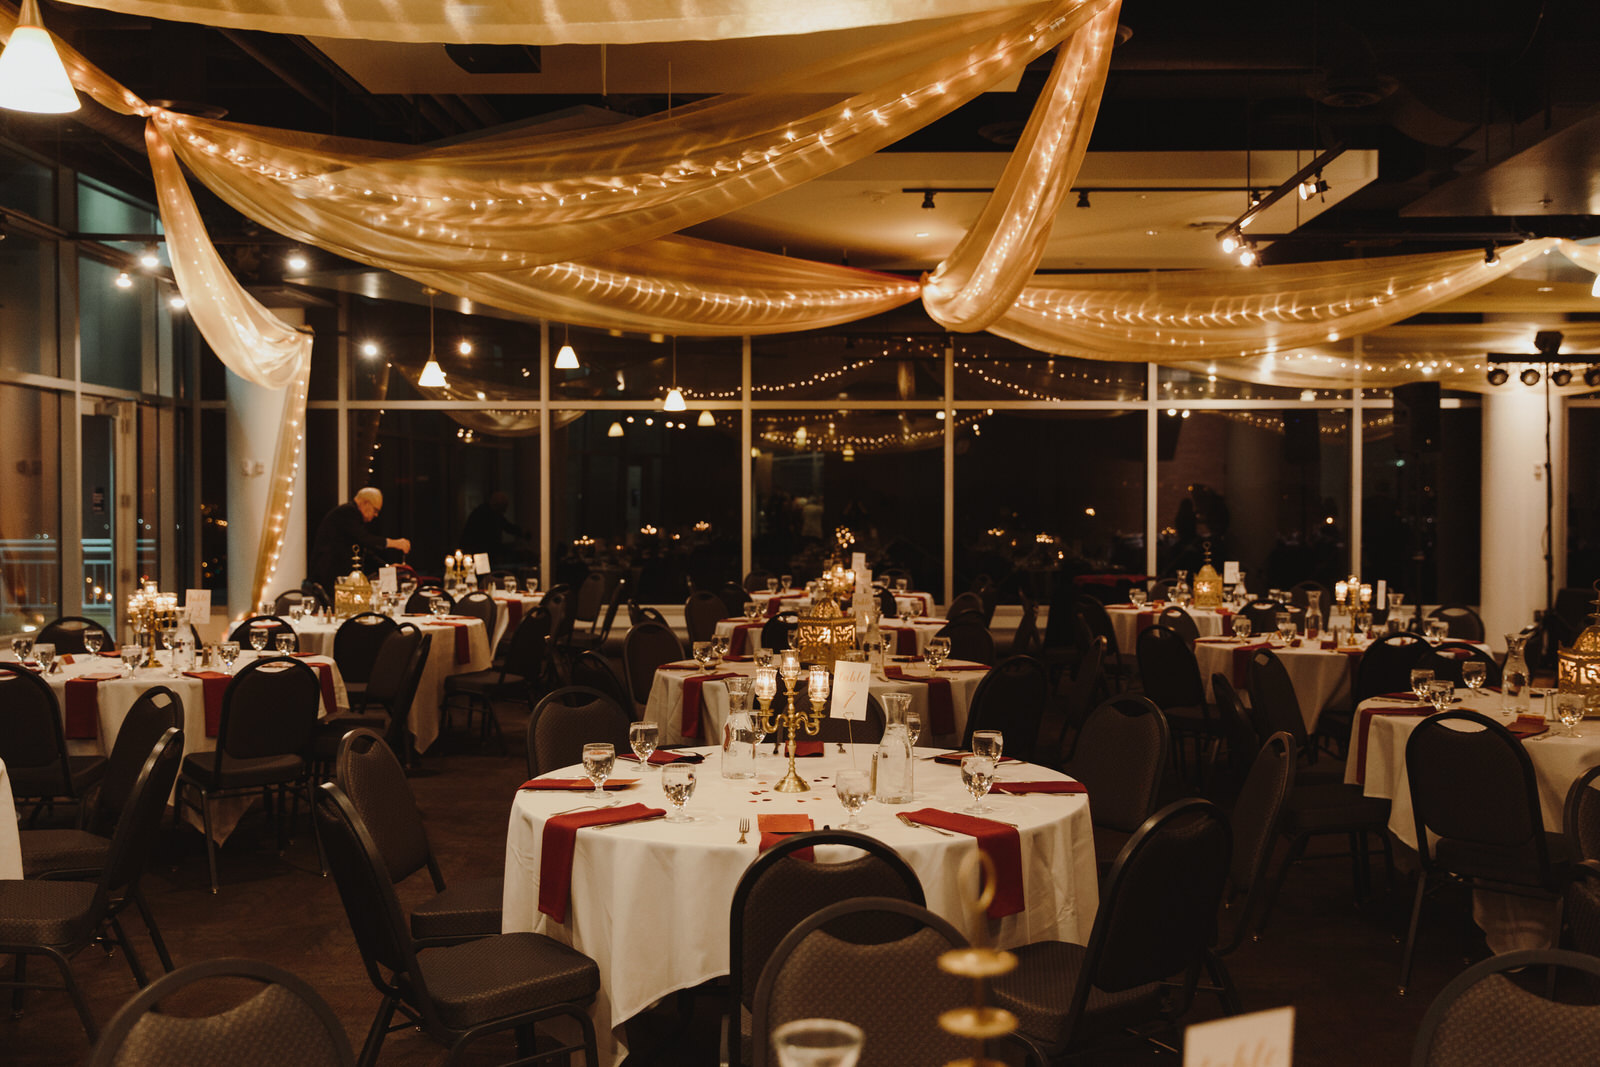 wedding at the Science Museum of MN planned by Rosetree Weddings & Events